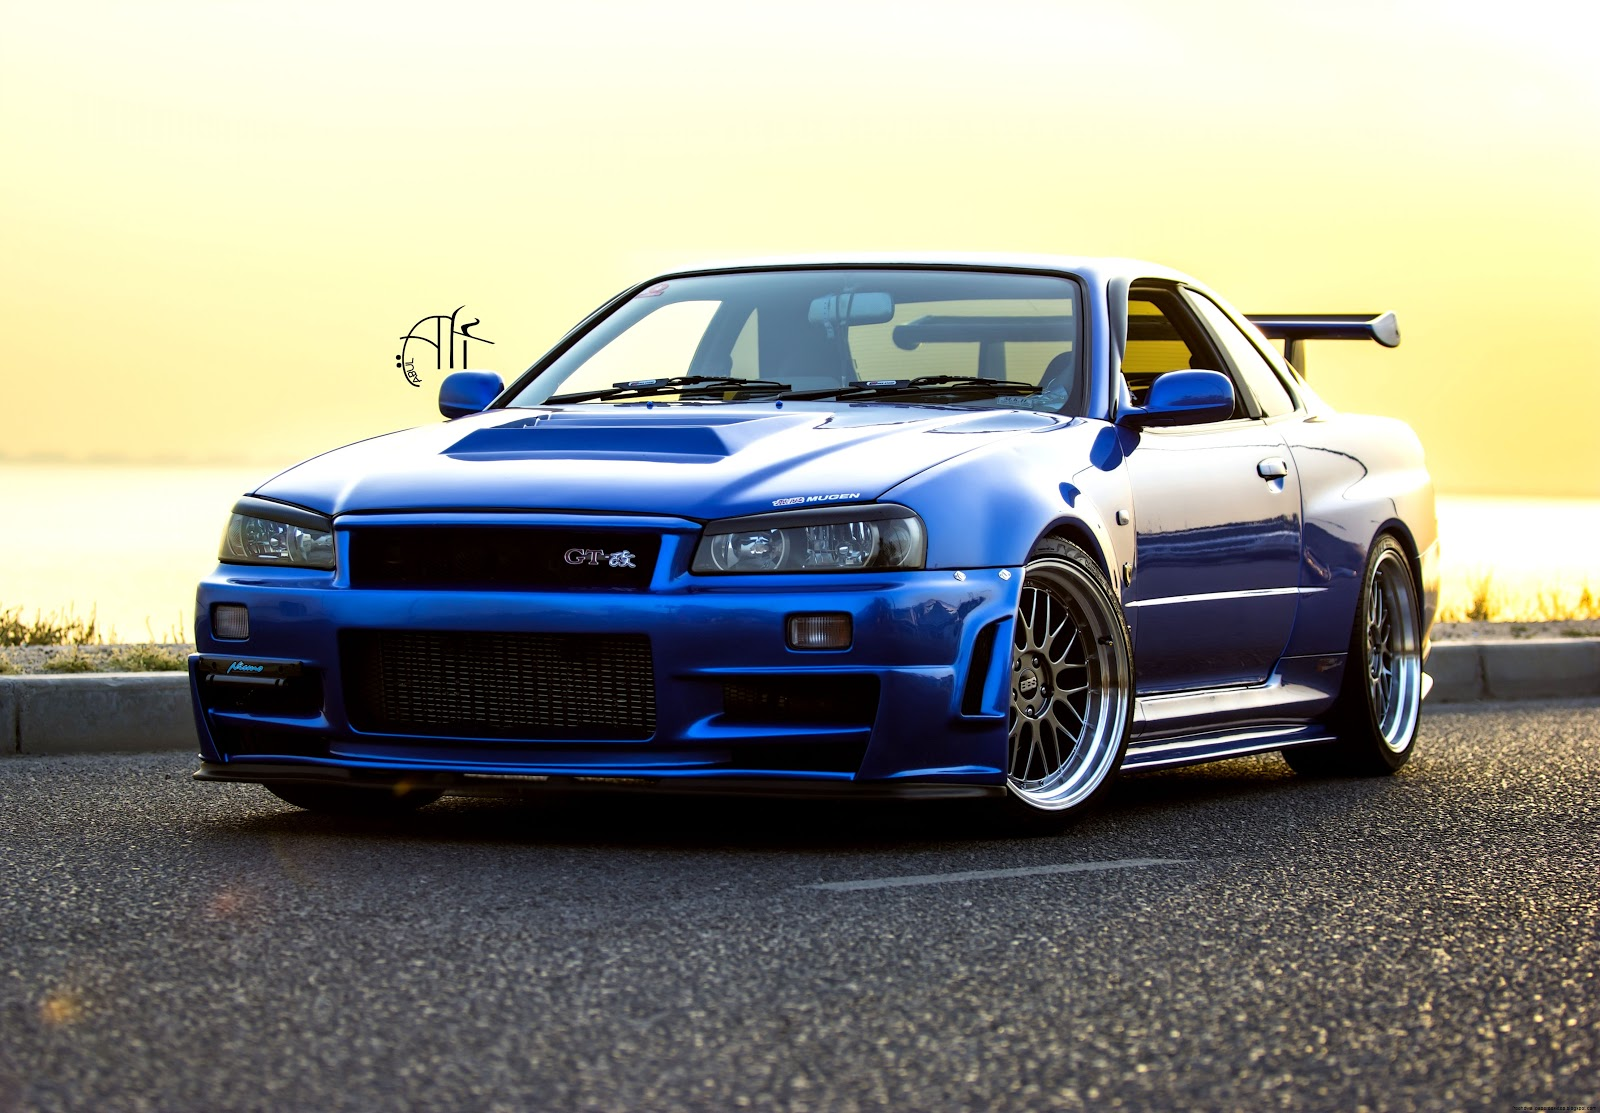 Nissan Skyline Gtr R Wallpaper   1600x1113